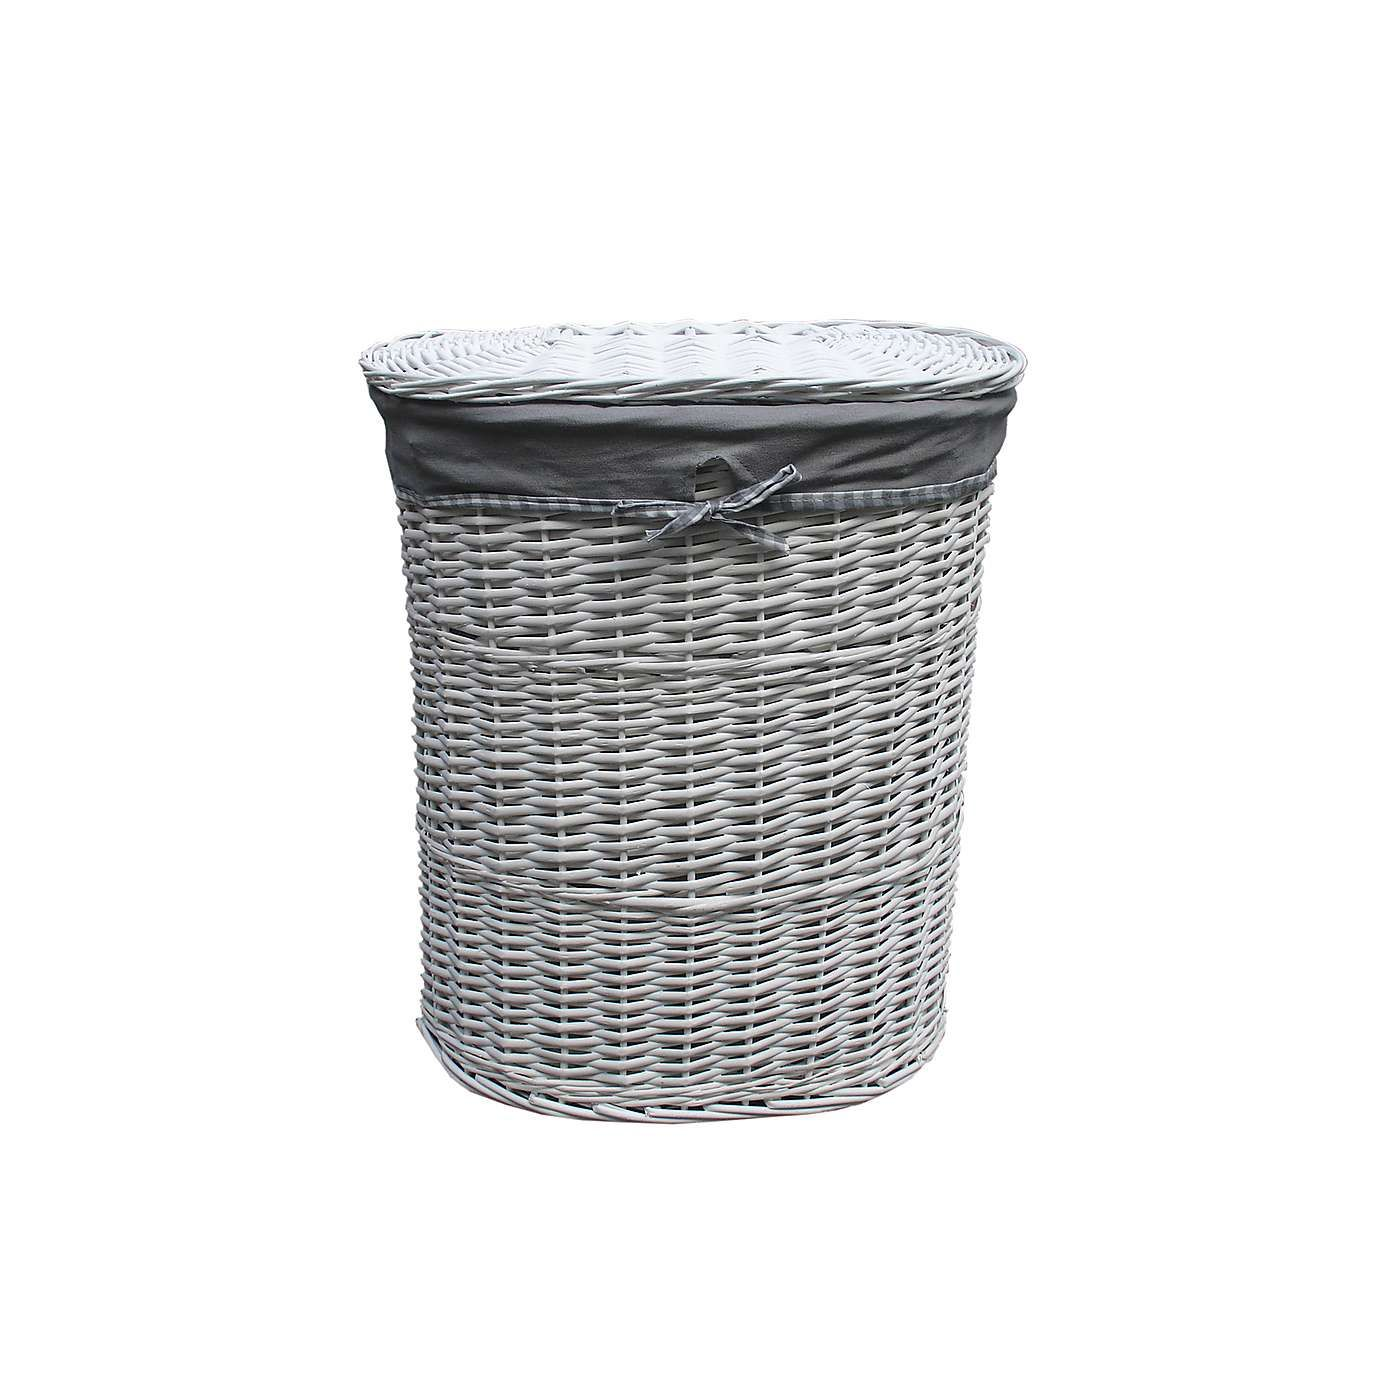 Gingham Large Laundry Hamper Dunelm Large Laundry Hamper Large Laundry Basket Laundry Hamper